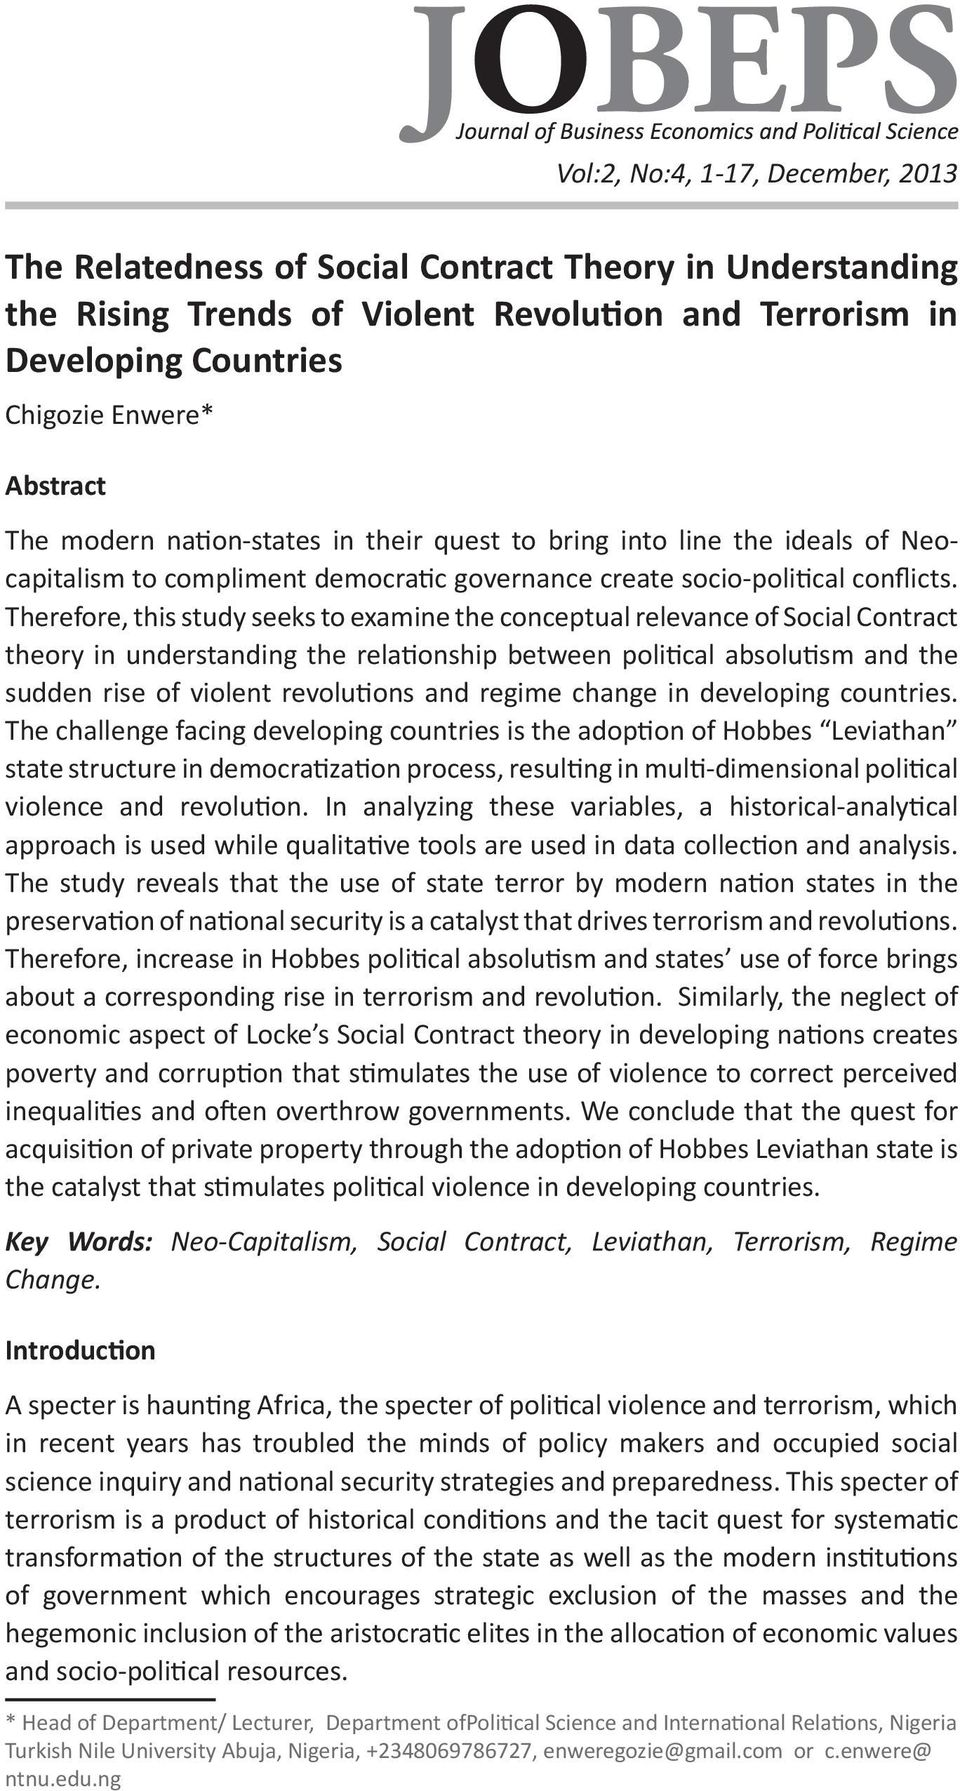 Therefore, this study seeks to examine the conceptual relevance of Social Contract theory in understanding the relationship between political absolutism and the sudden rise of violent revolutions and